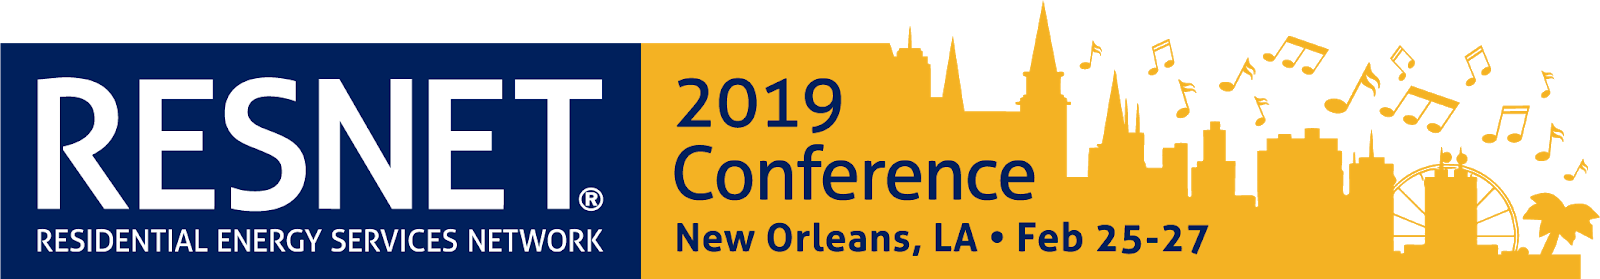 2019 RESNET Building Performance Conference